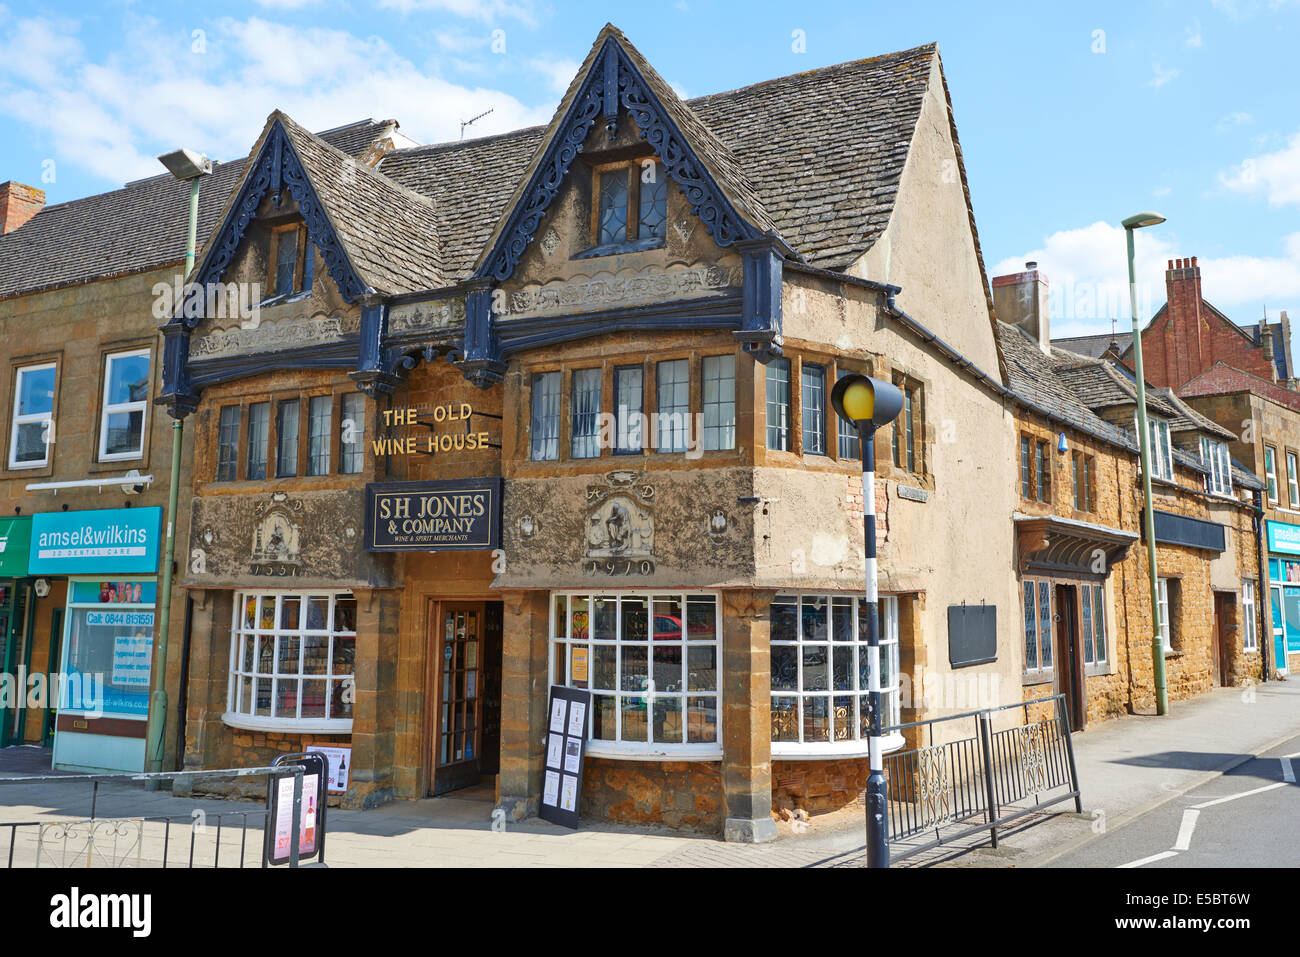 S H Jones Wine Merchants High Street Banbury Oxfordshire UK - Stock Image